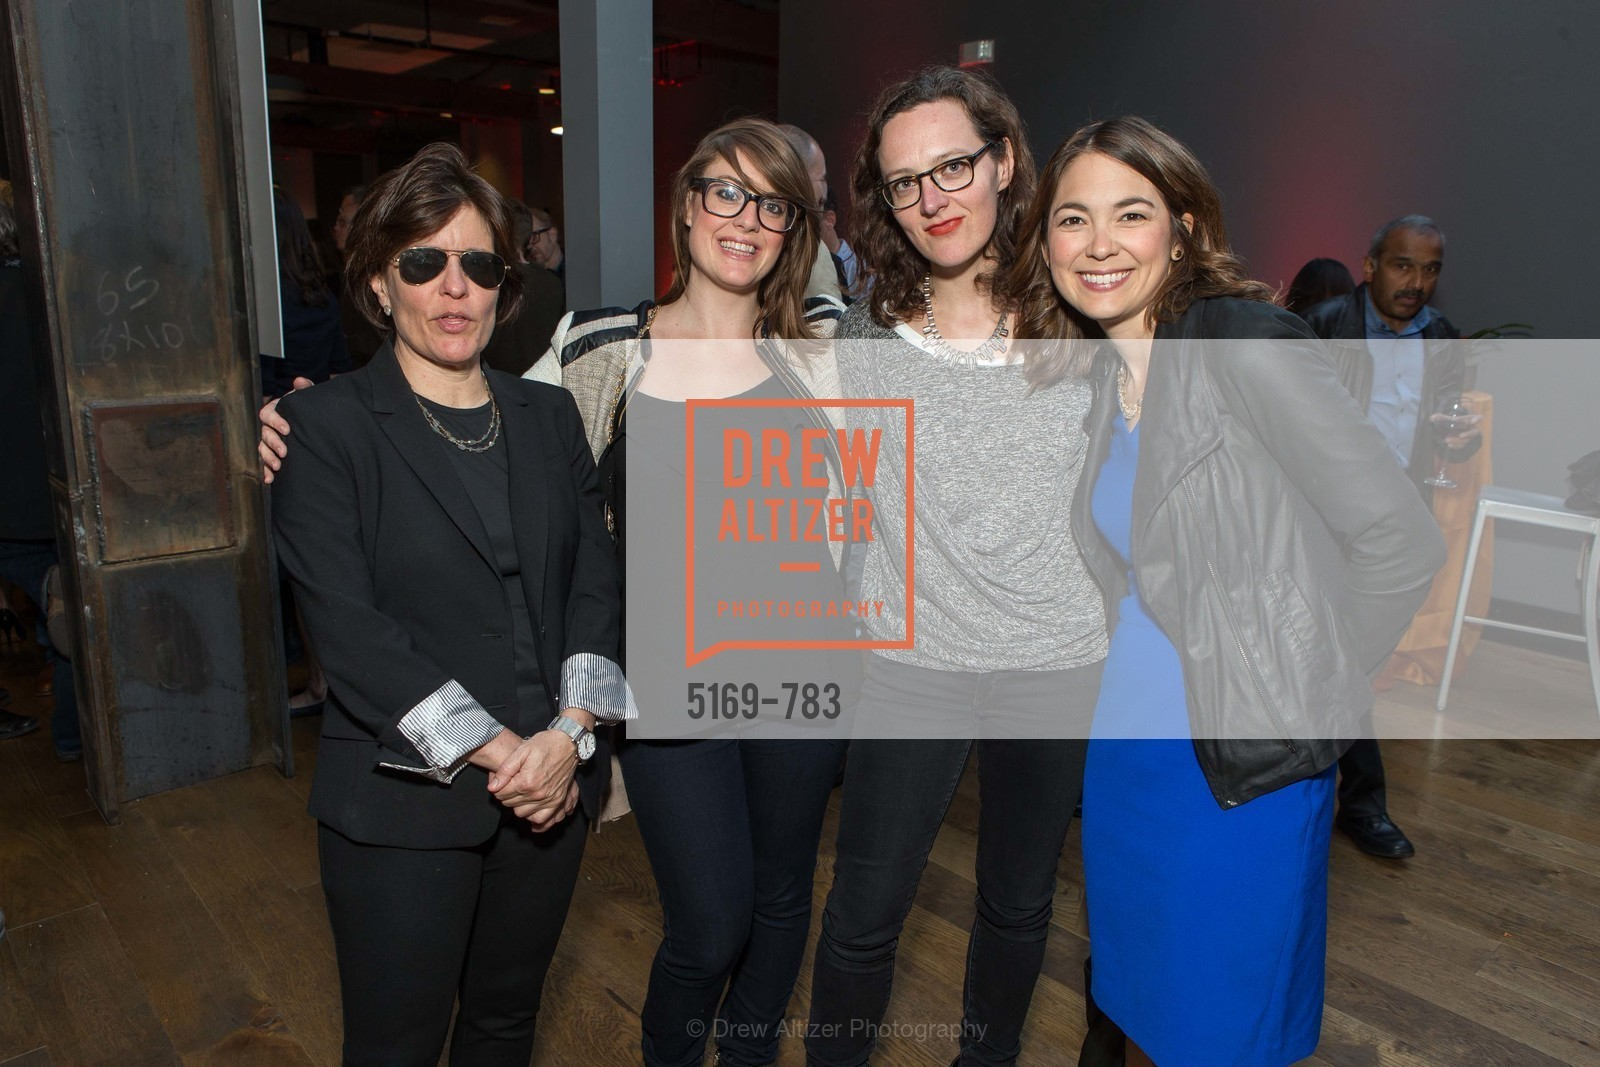 Kara Swisher, Carmel Deamicis, Astrid Maier, Emily Chang, HBO'S SILICON VALLEY San Francisco Screening, US, April 8th, 2015,Drew Altizer, Drew Altizer Photography, full-service agency, private events, San Francisco photographer, photographer california